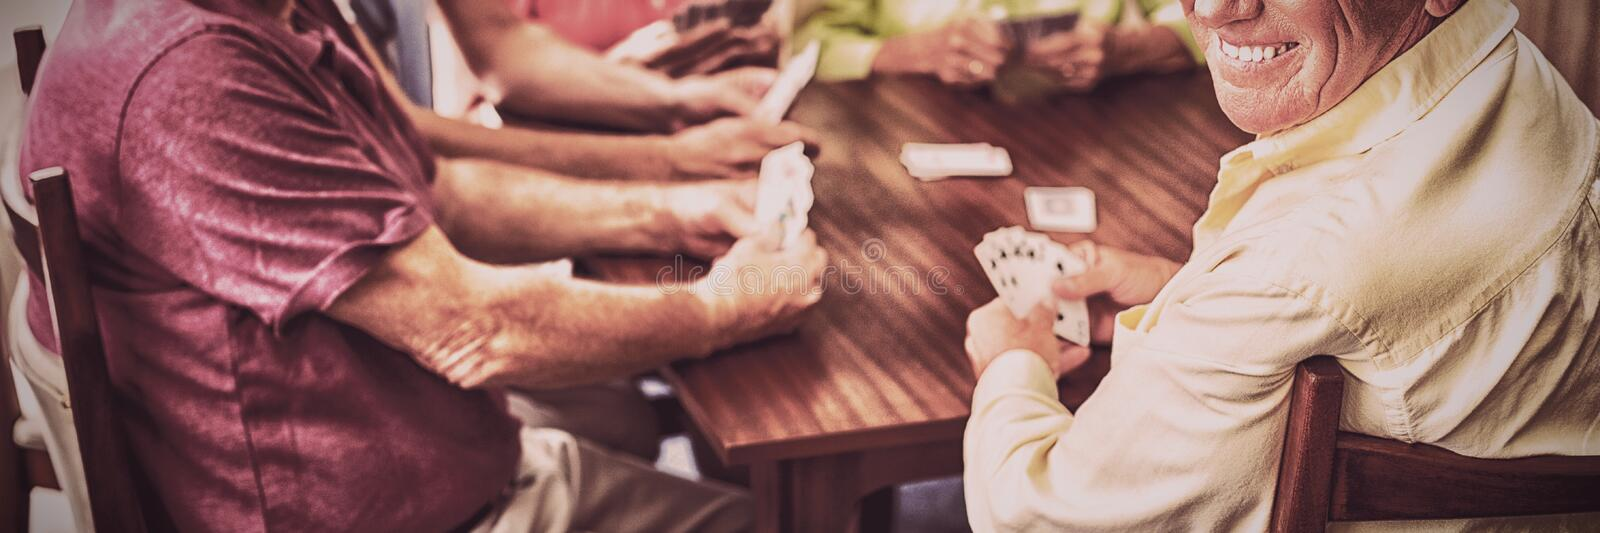 Seniors playing cards together royalty free stock photography